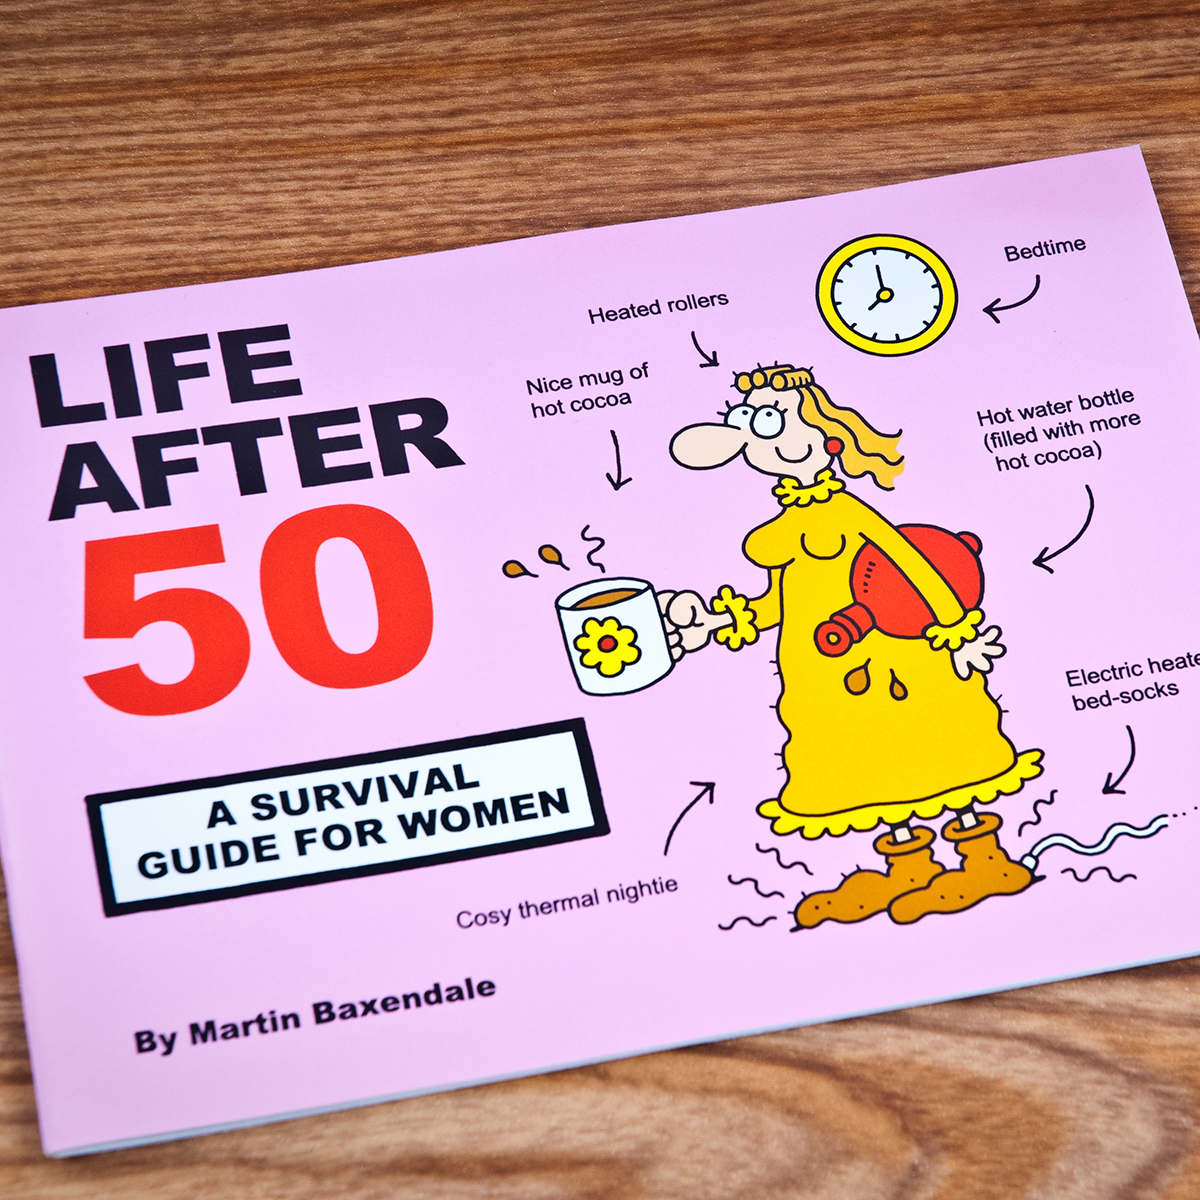 life after 50 years Life expectancy: how long will you live  after 100 years and a civil rights movement,  in 2008 uk men at age 65 had around 17 years of life expectancy left,.